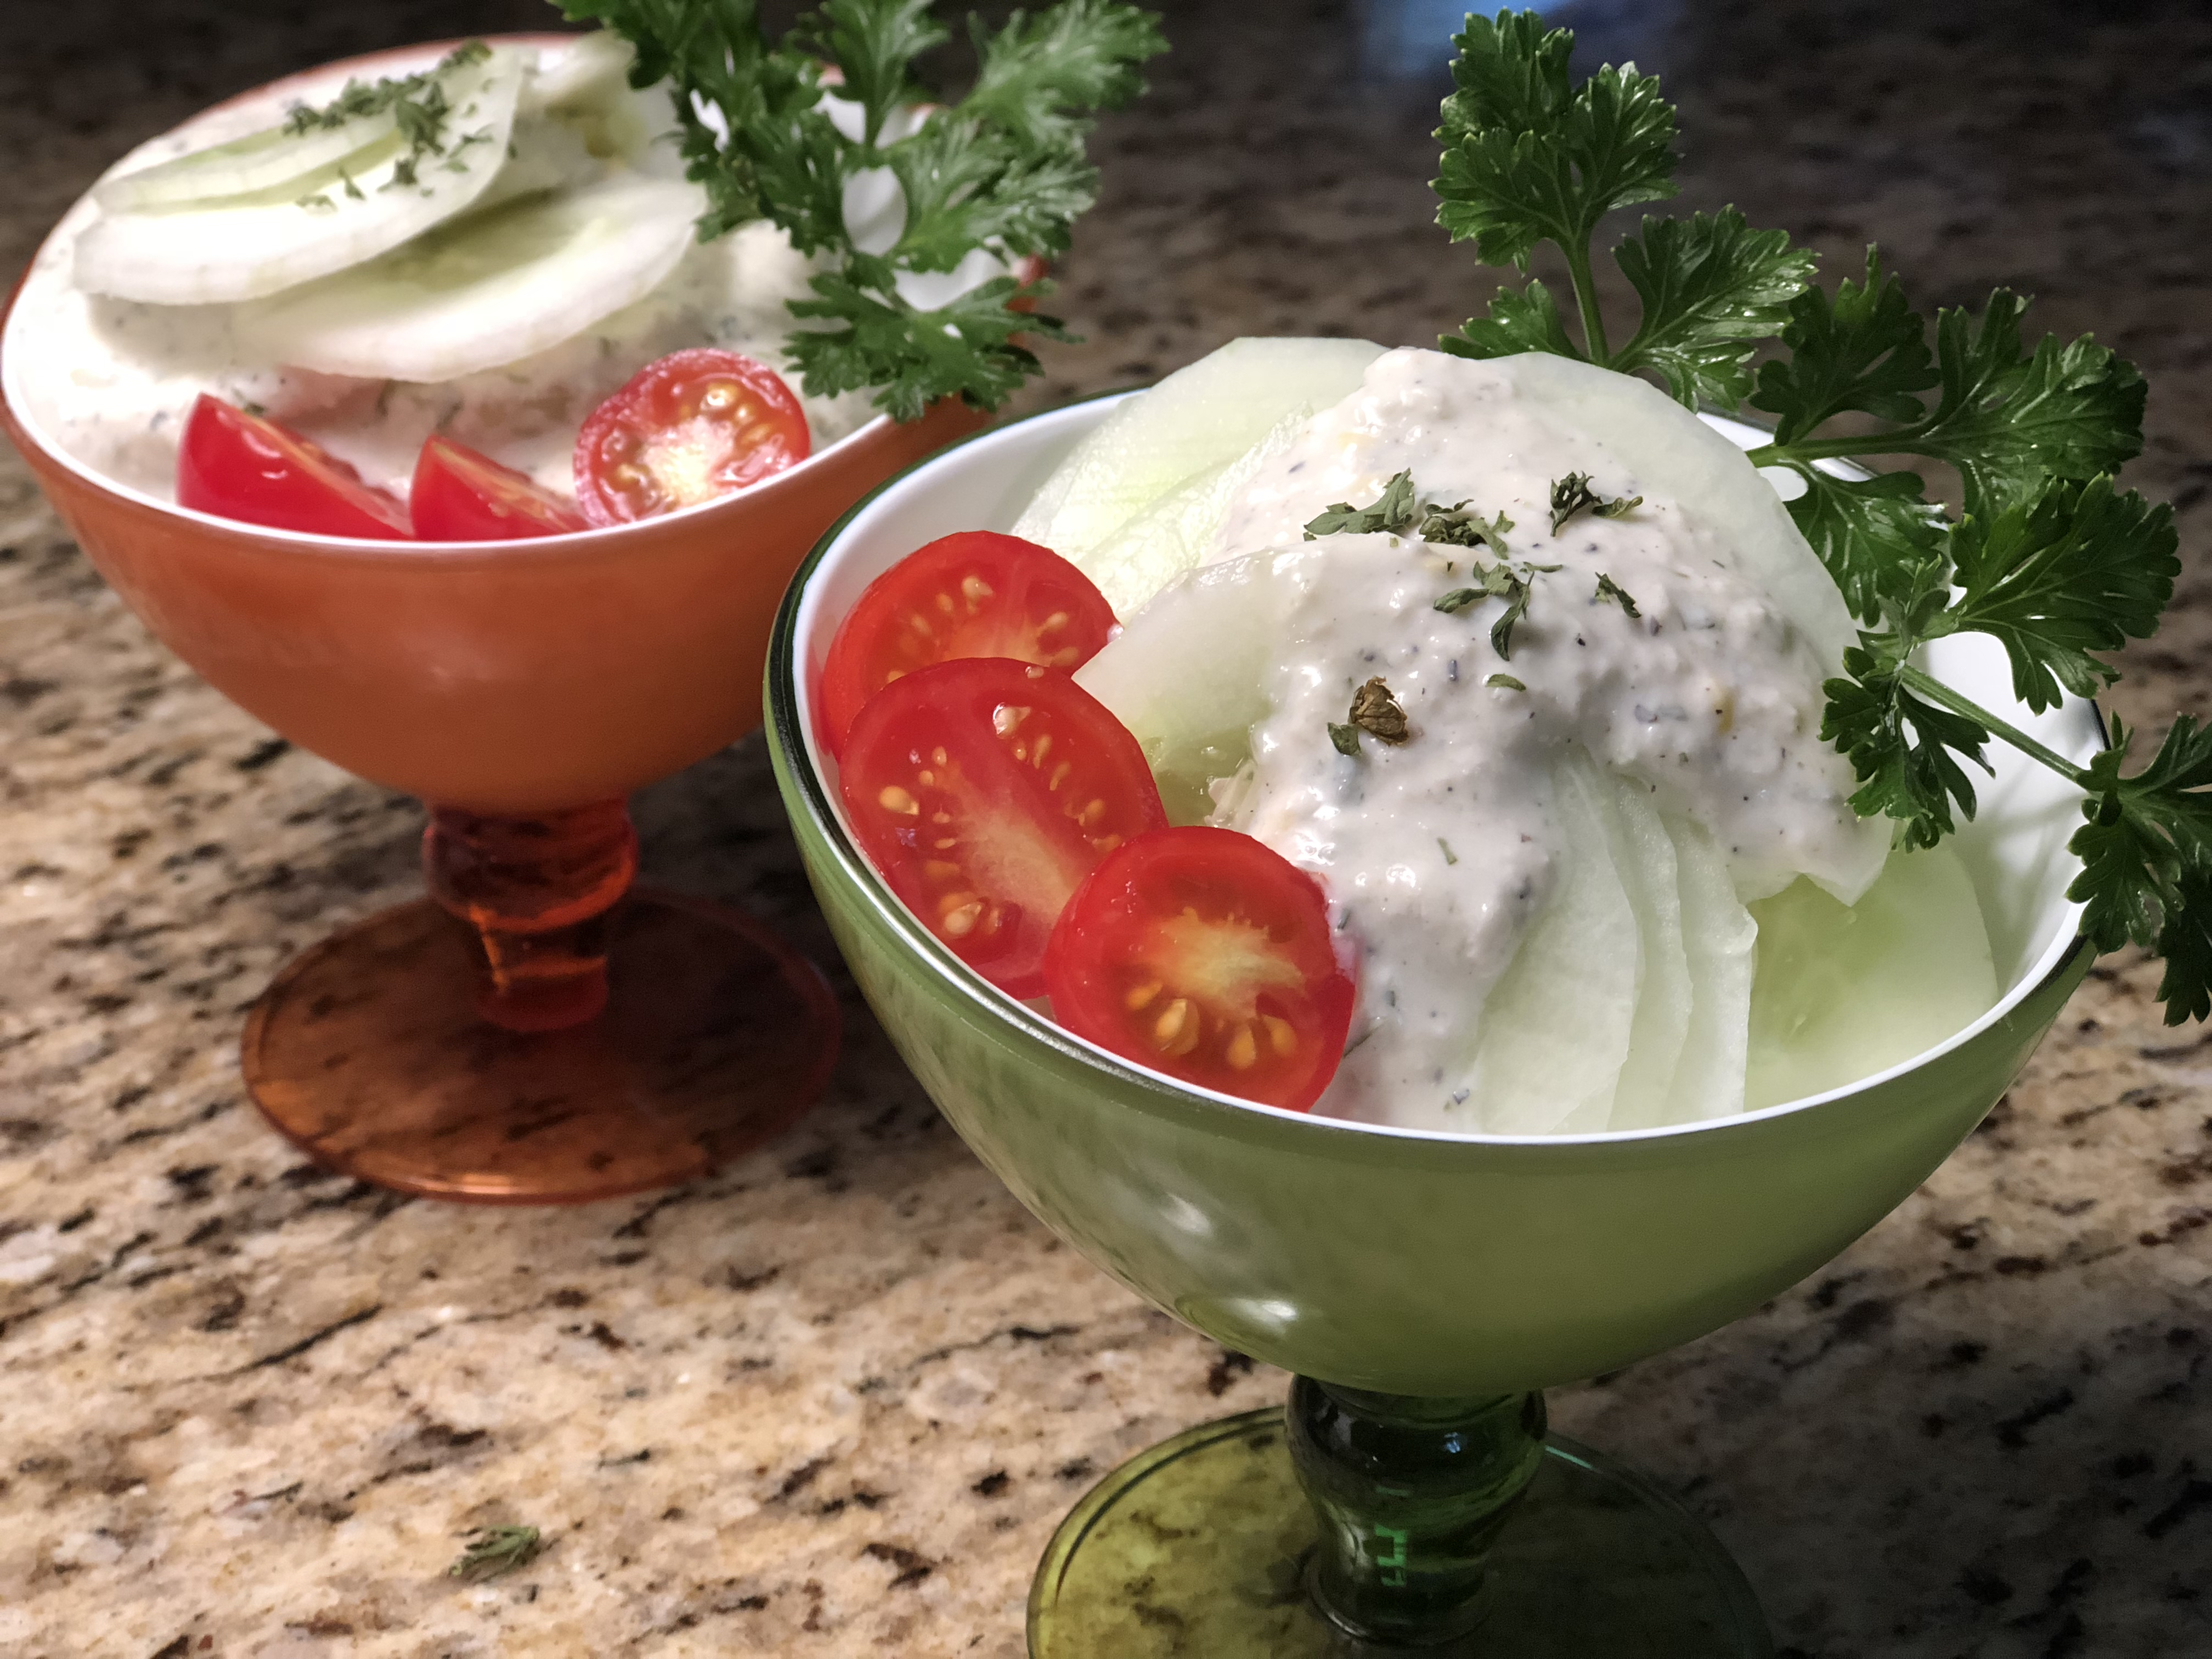 Two bowls filled with cucumber slices, topped with a white herb dressing and halved cherry tomatoes, garnished with parsley